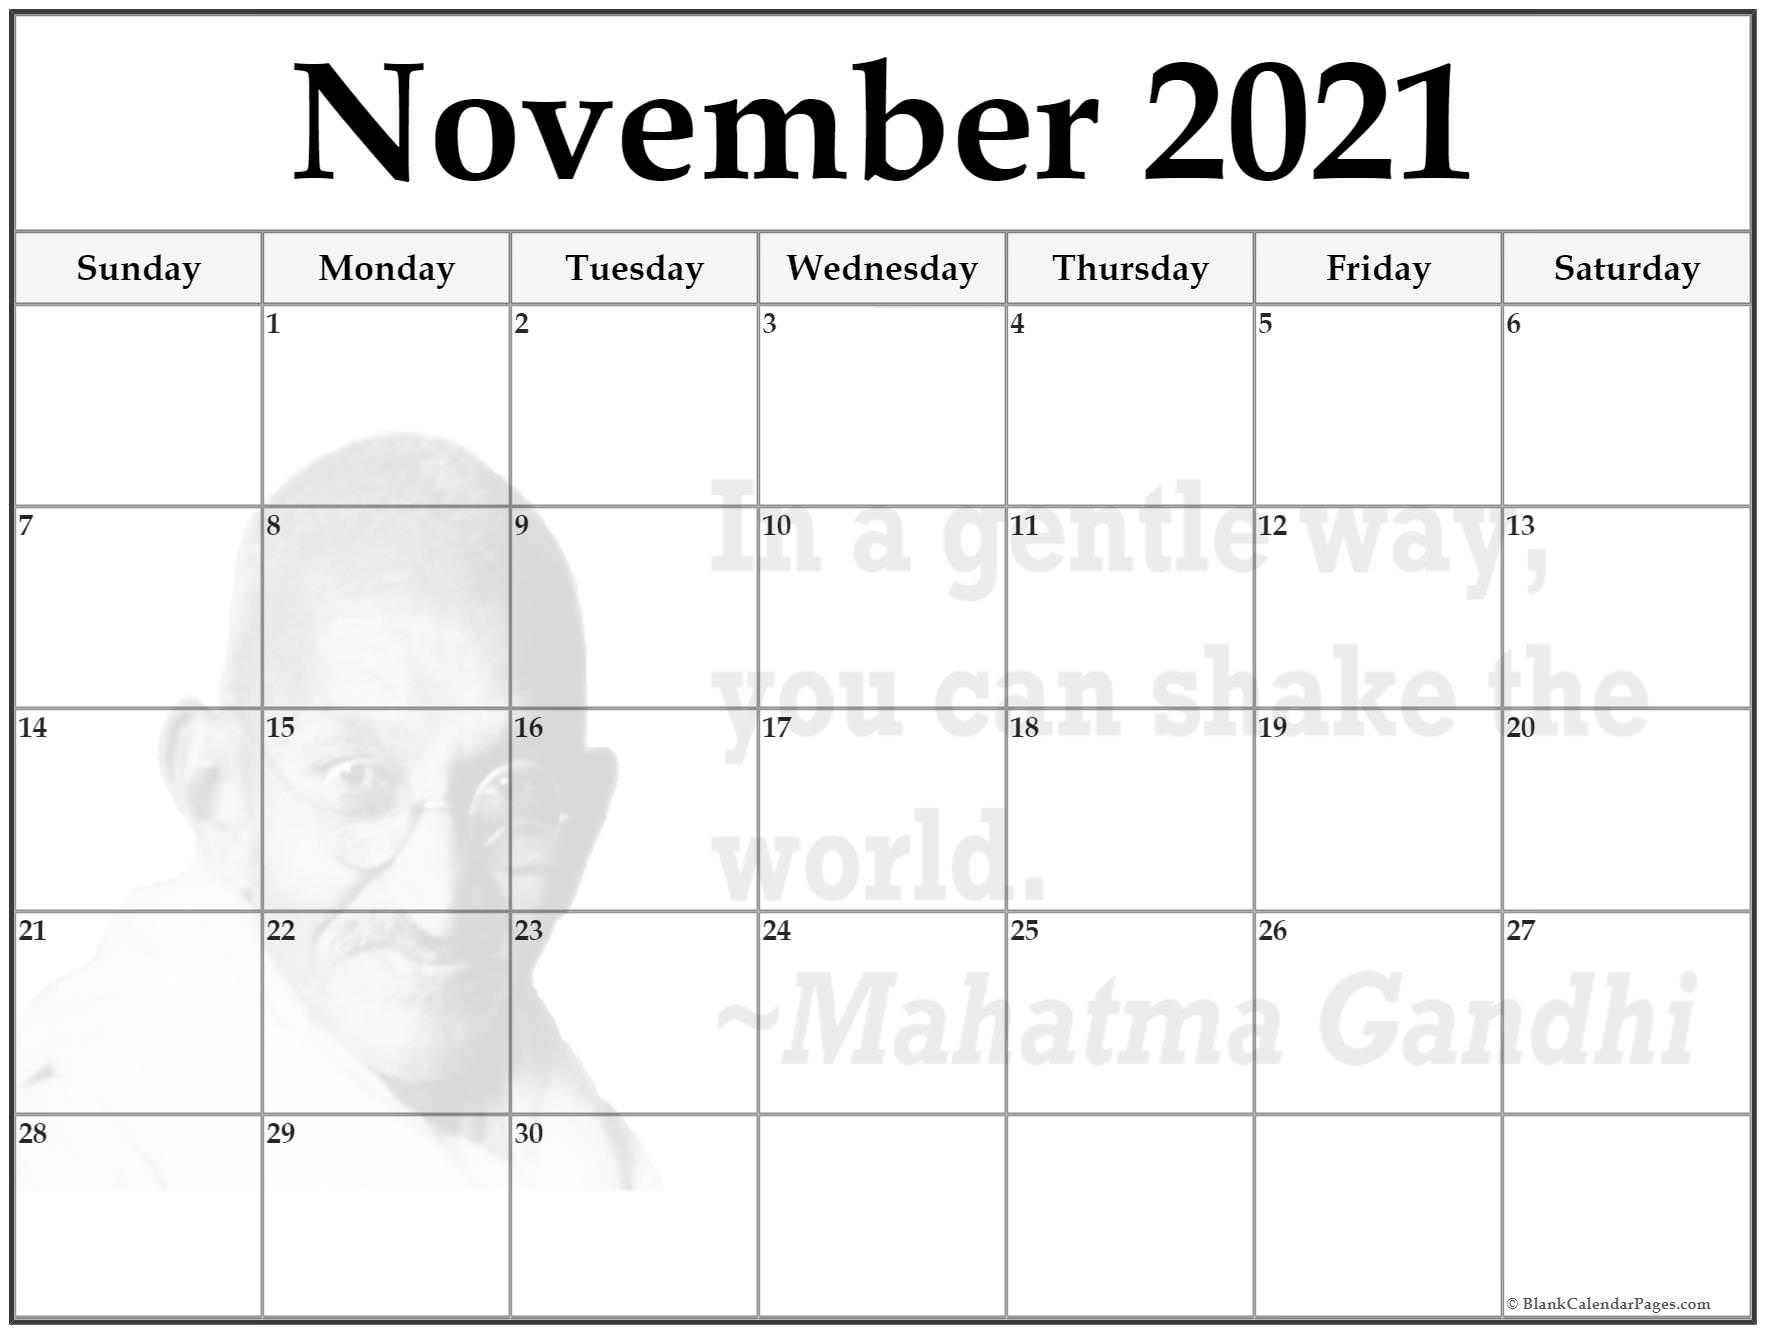 November 2020 quote calendar . In a gentle way, you can shake the world. ~Mahatma Gandhi